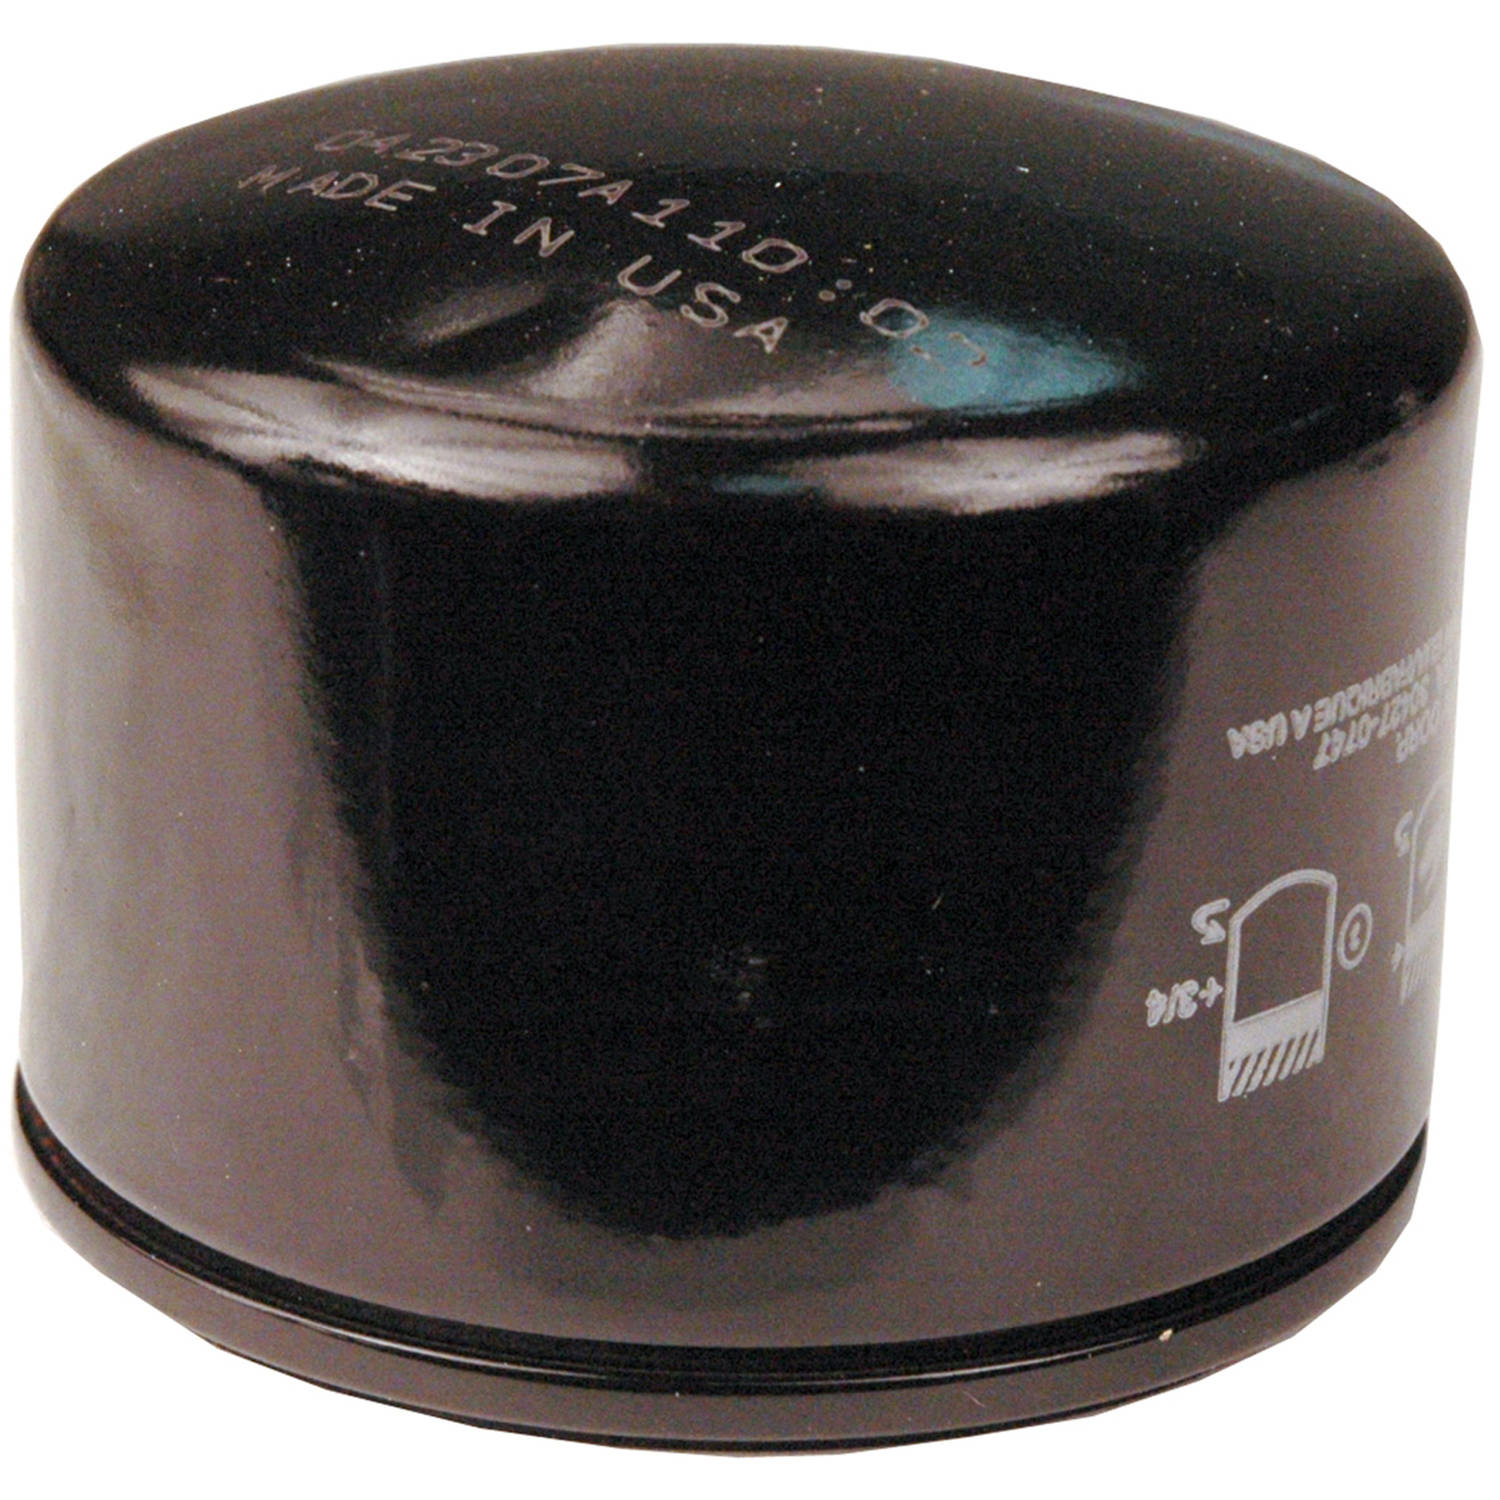 MaxPower 334294 Oil Filter for Briggs & Stratton and Kohler Engines Replaces OEM #491056, 52-050-02